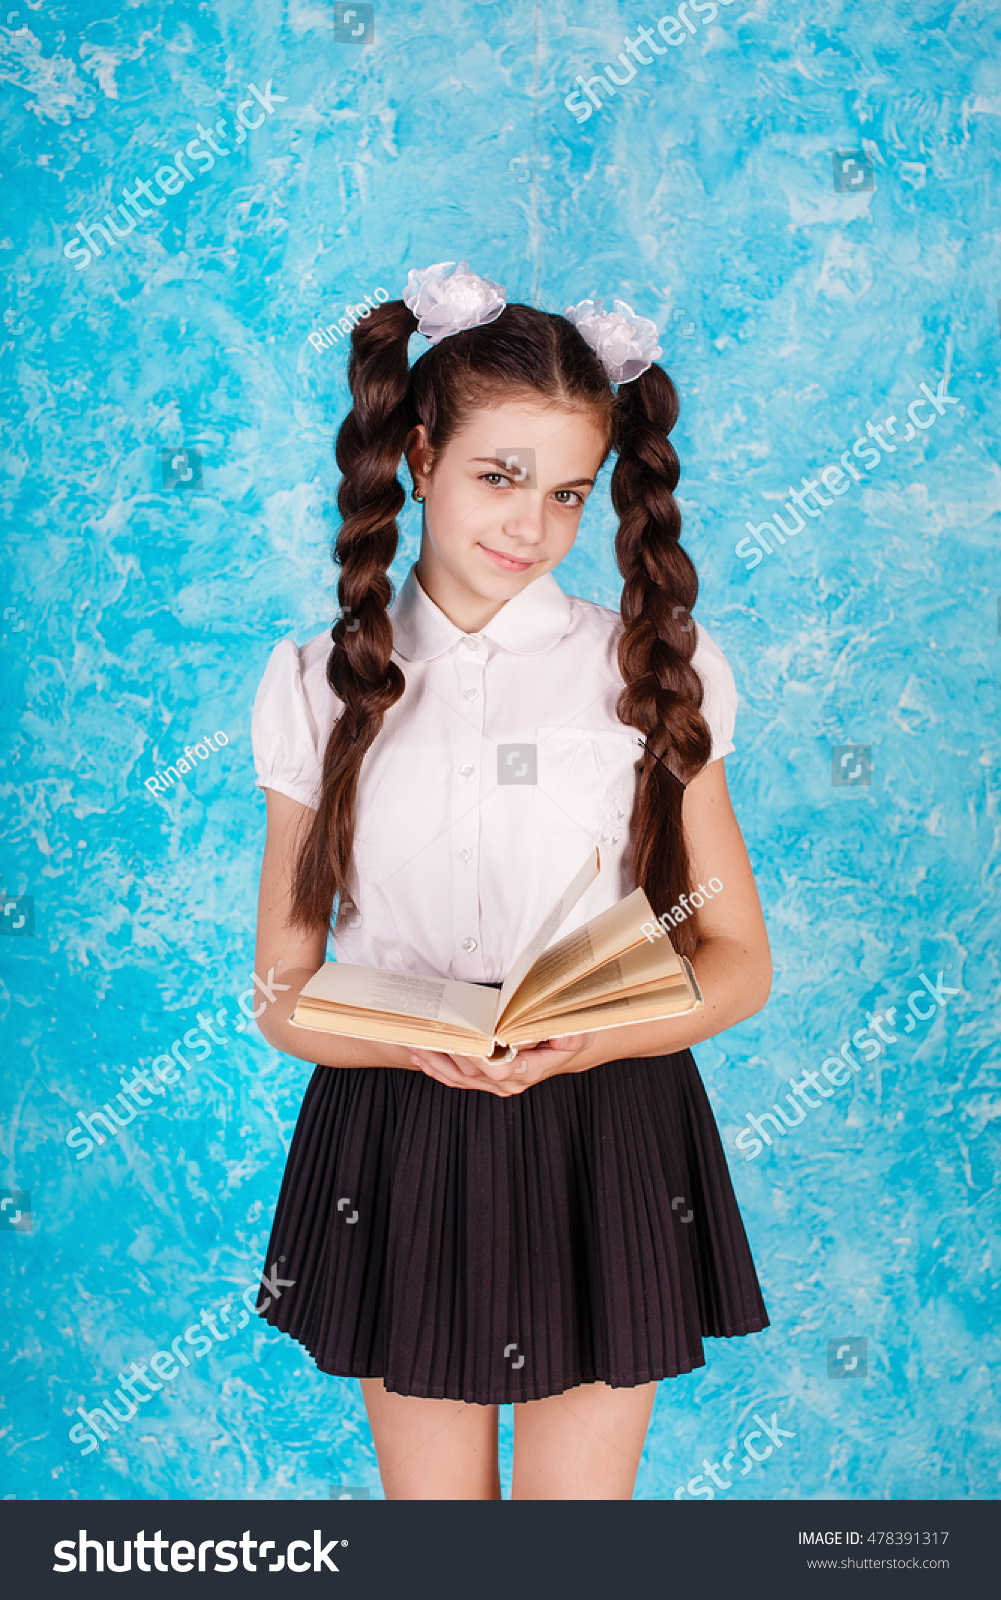 Skirt Pigtail teen in mini